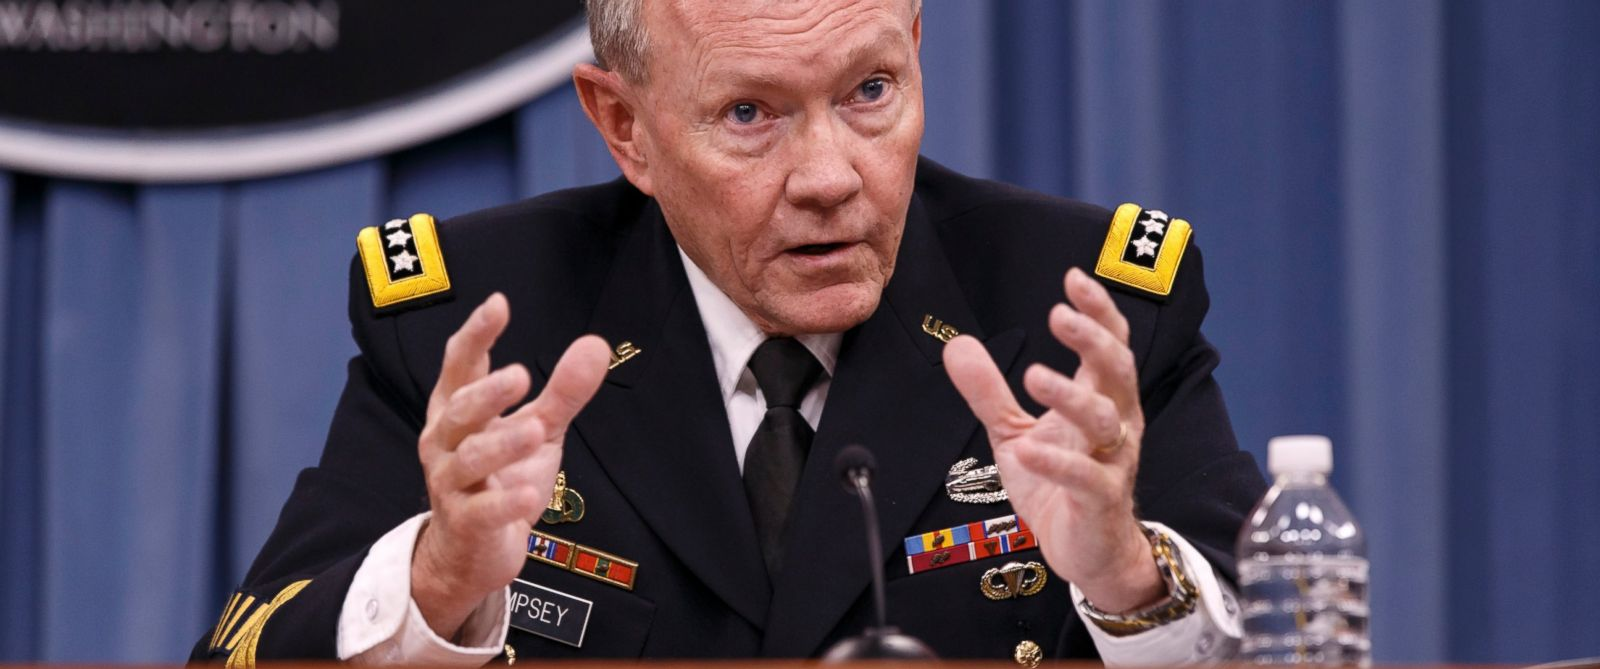 PHOTO: Joint Chiefs Chairman Gen. Martin Dempsey briefs reporters about ongoing operations against Islamic extremists in Syria and Iraq during a news conference at the Pentagon, Sept. 26, 2014.